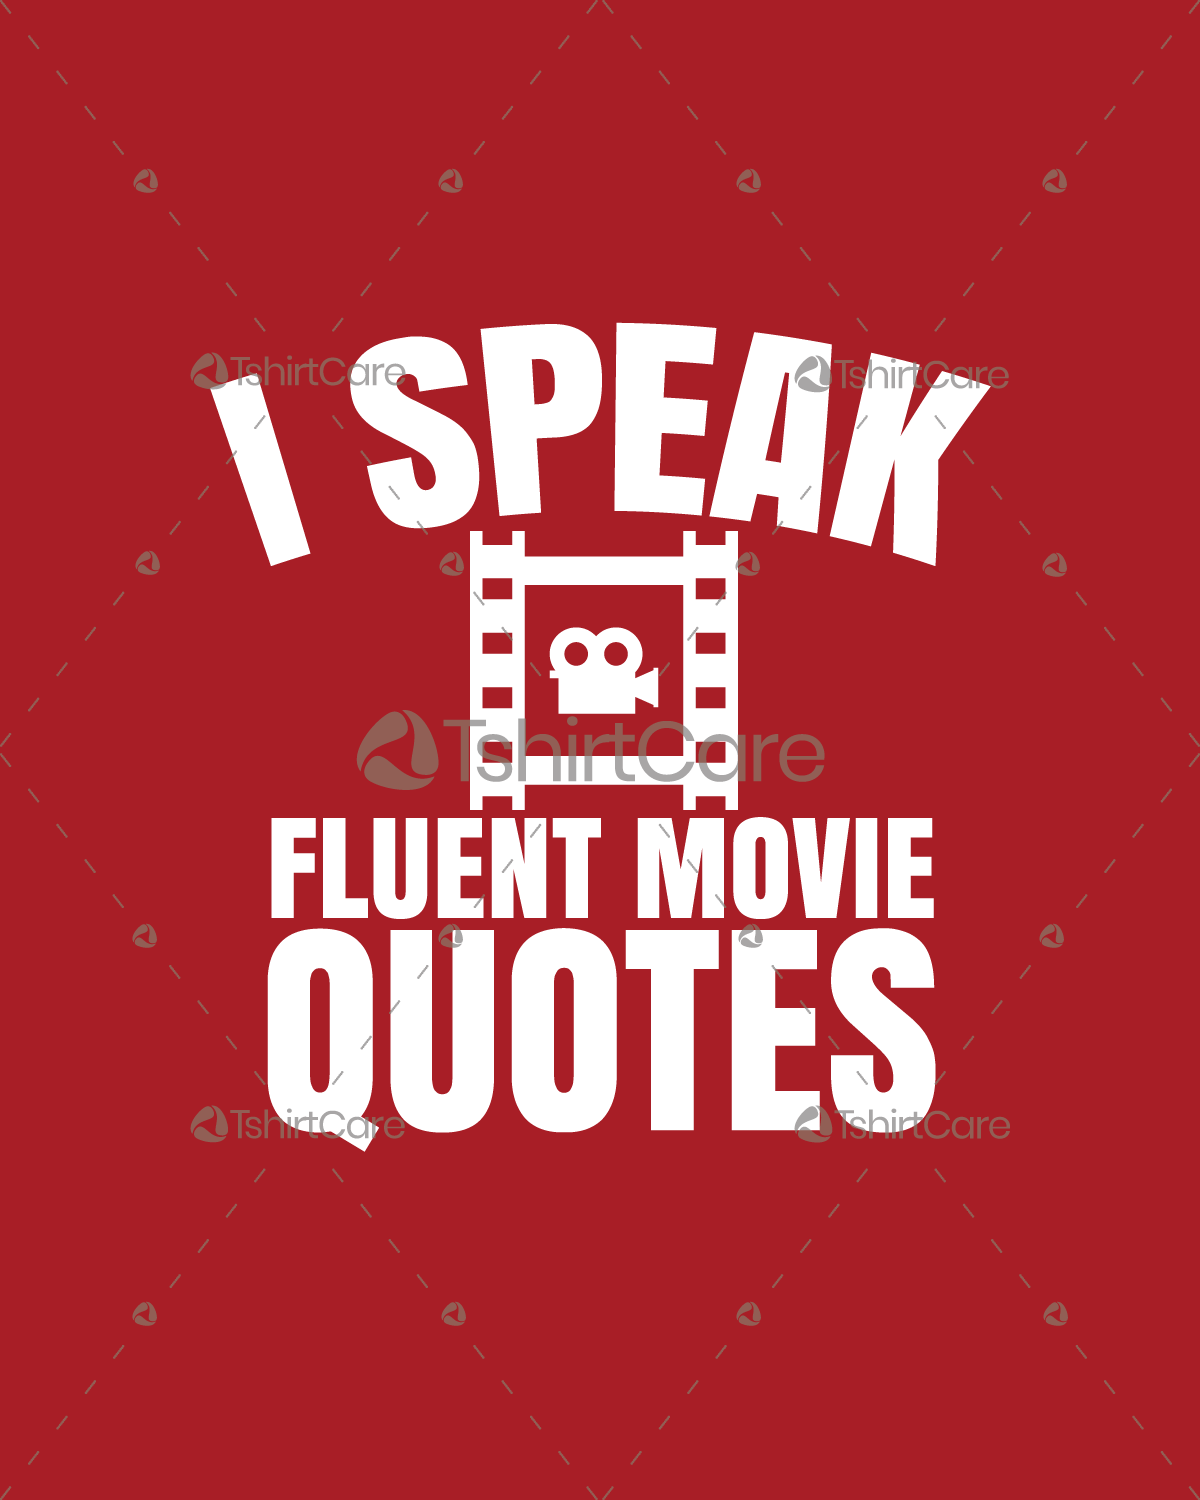 I speak fluent movie quotes T shirt Design Funny Movie Lovers Adult Men's &  Women's Tee Shirts - TshirtCare